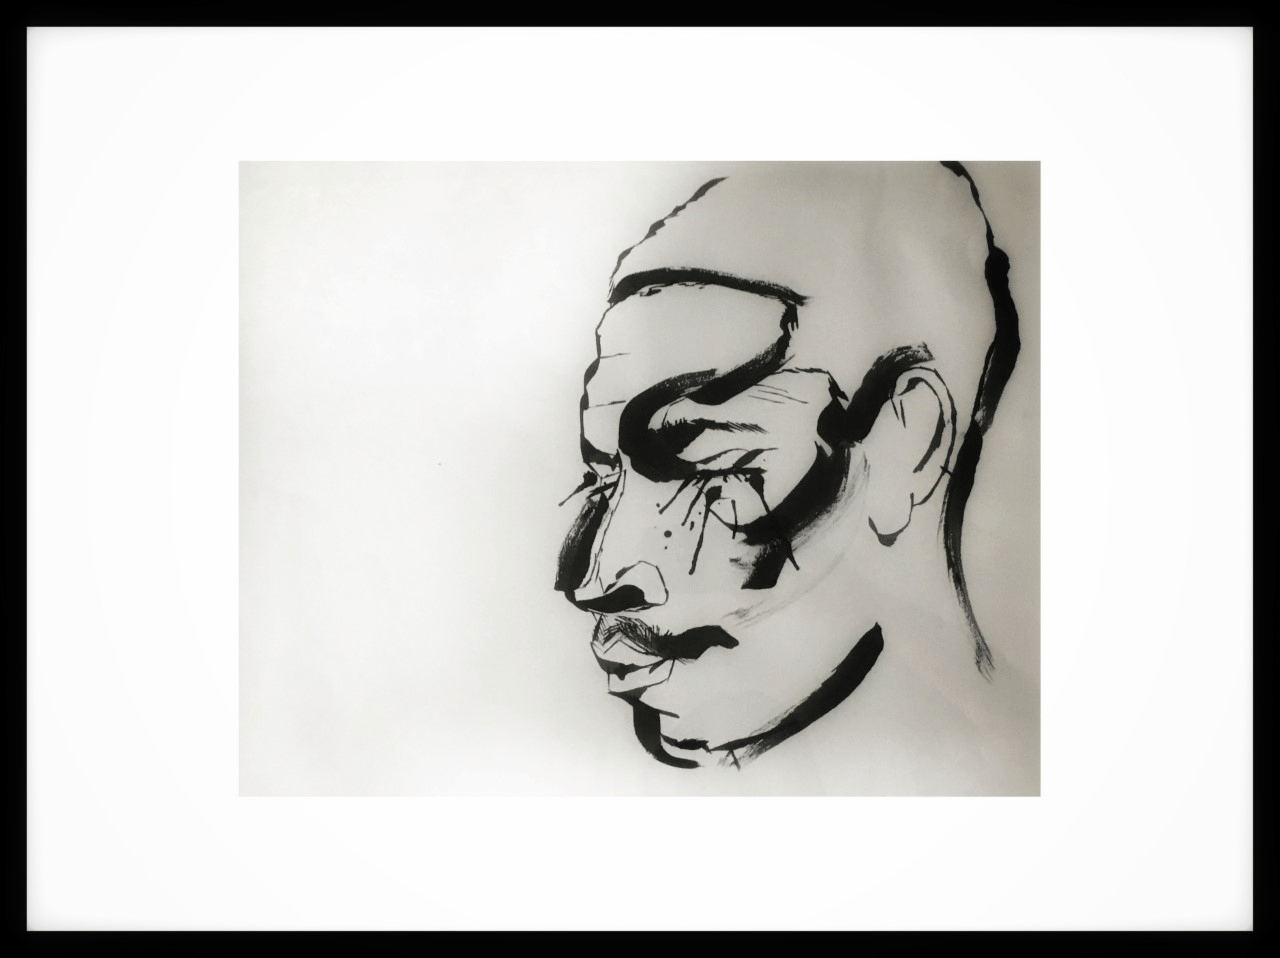 A painting of a persons face